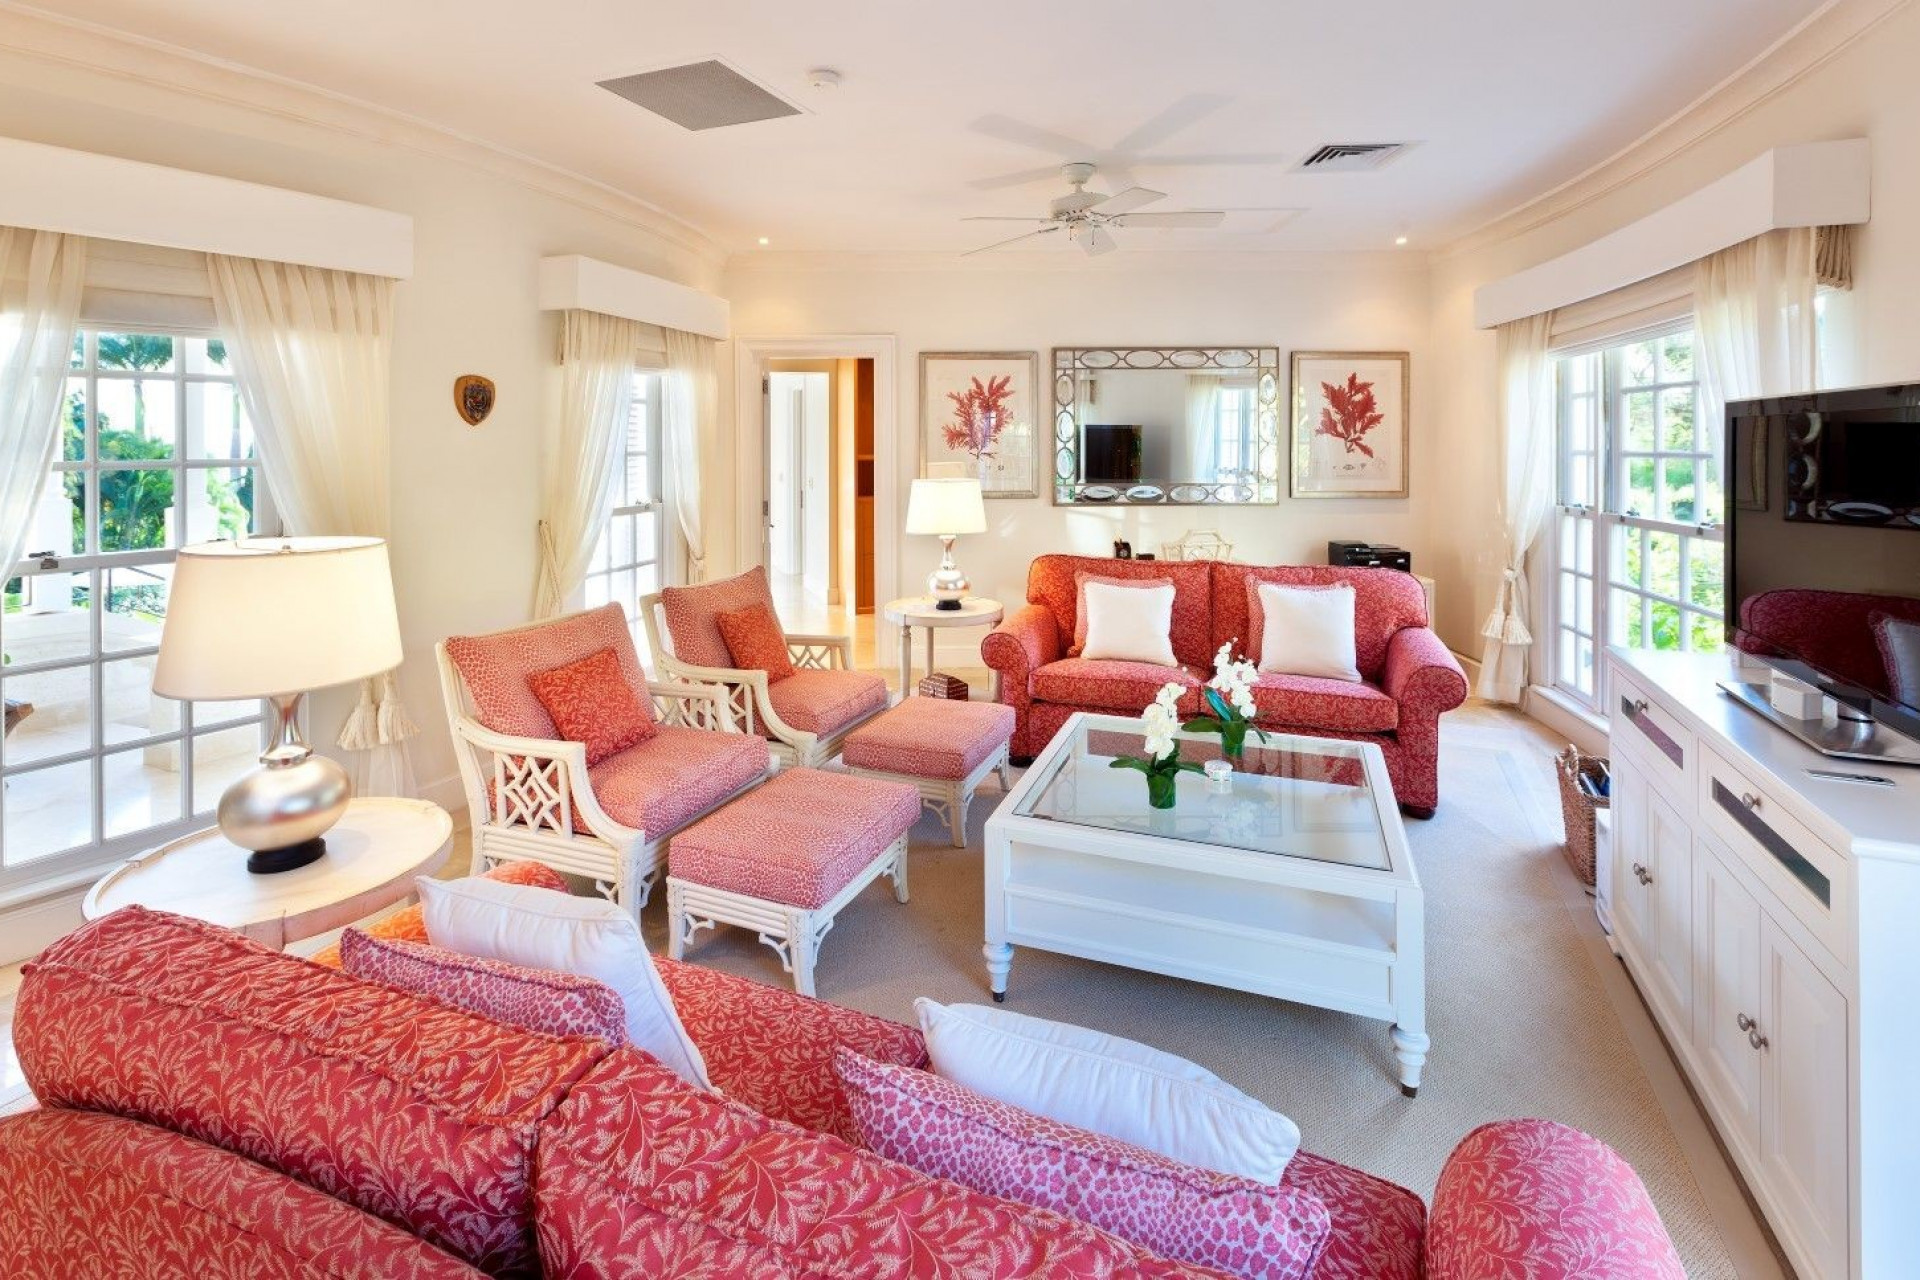 Red Luxury Lounge 5 Bedroom Villa Sugar Hill, Barbados with Private Pool, Putting Green & Sea Views